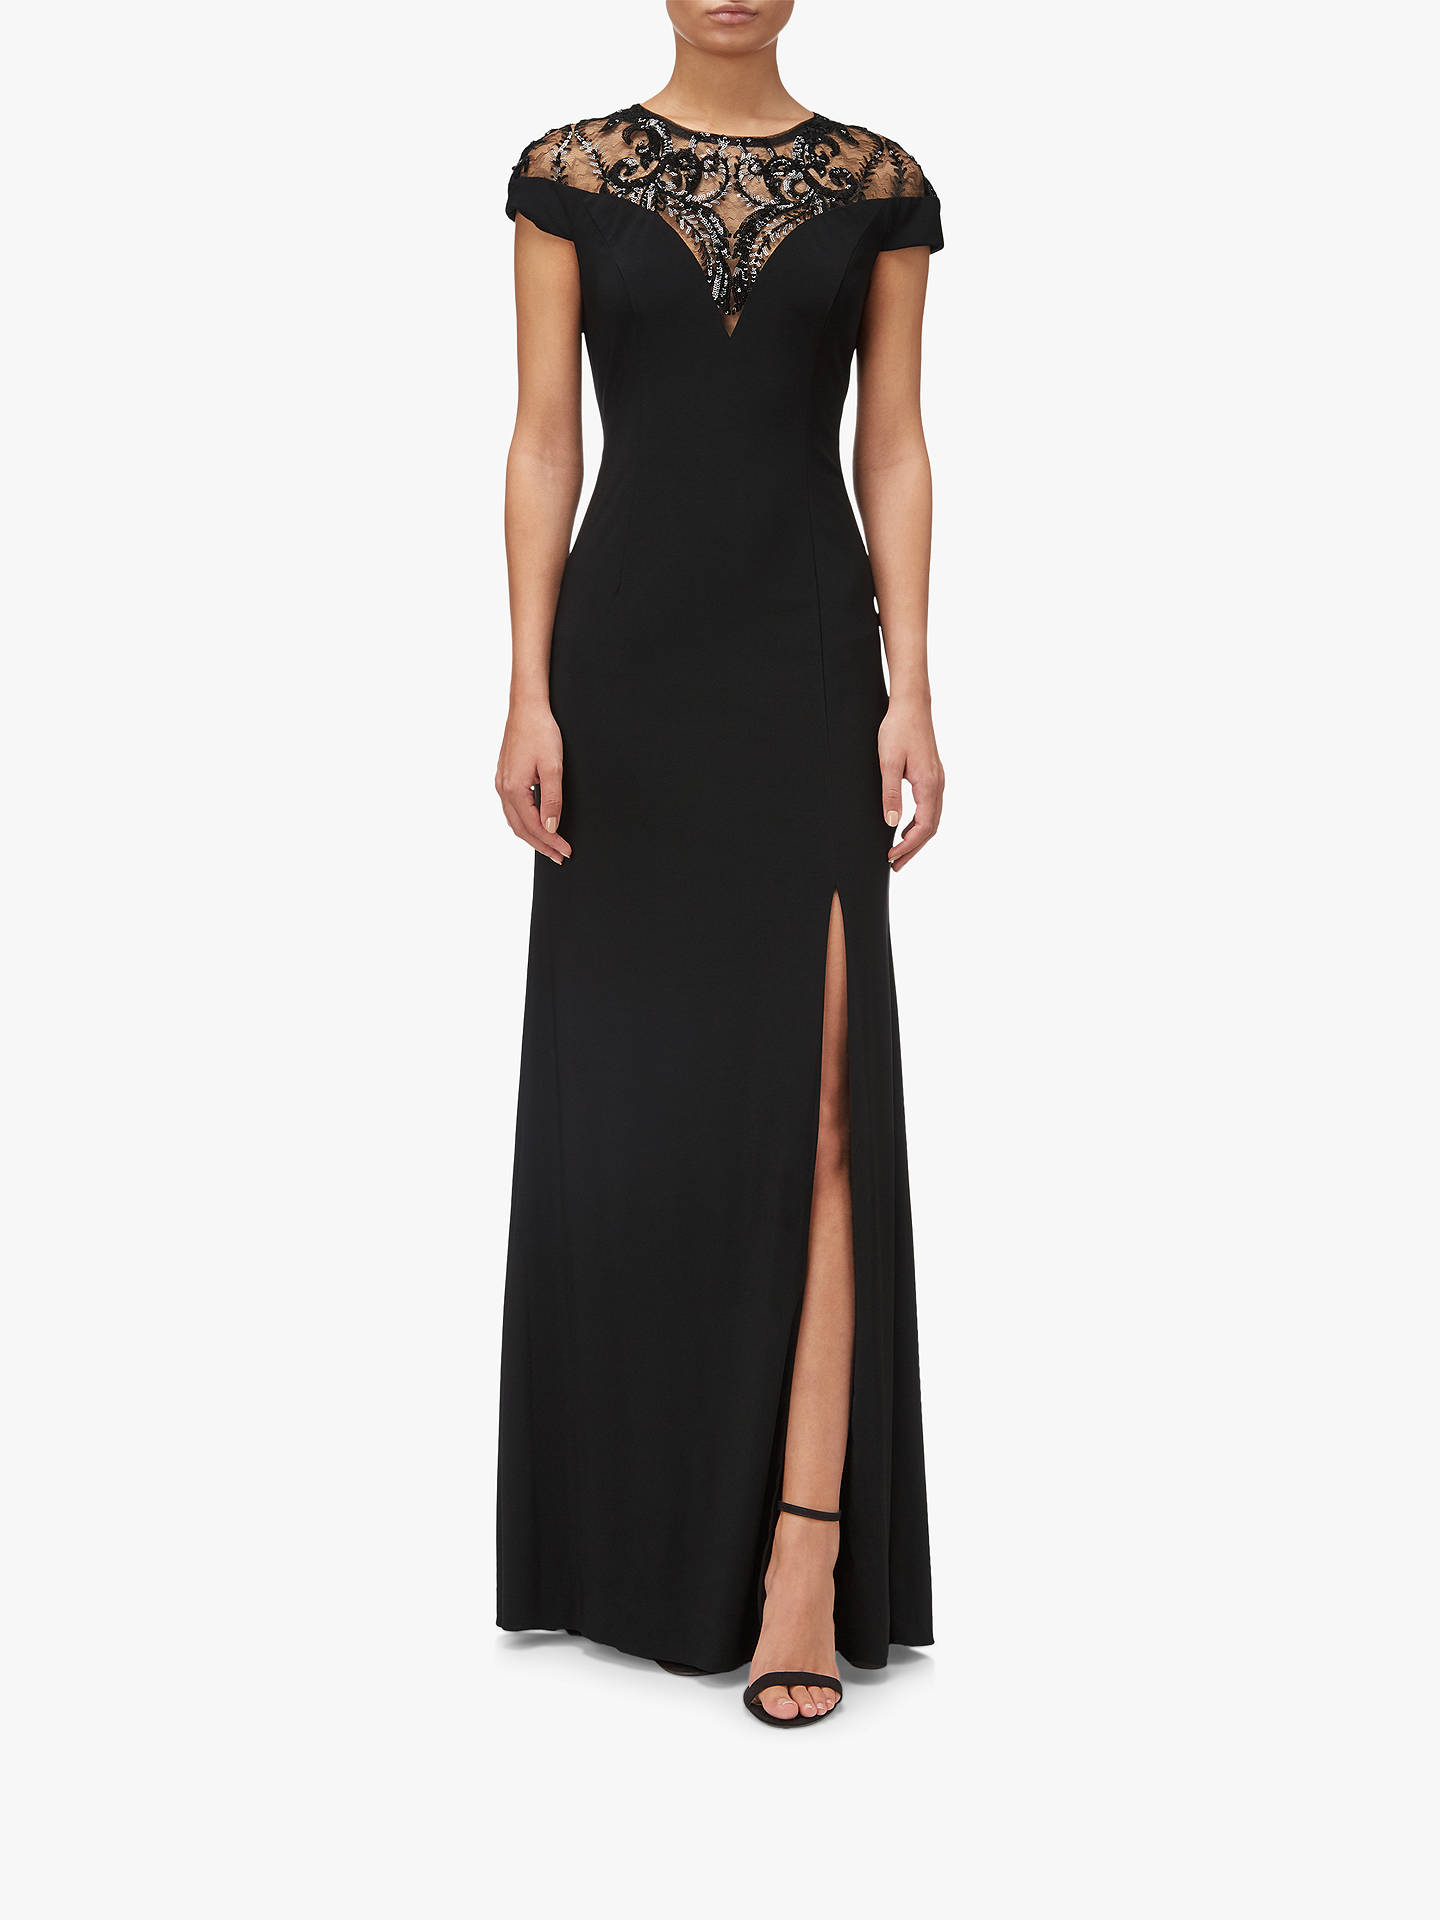 f95832adc372 Buy Adrianna Papell Sequin Jersey Maxi Dress, Black, 18 Online at  johnlewis.com ...